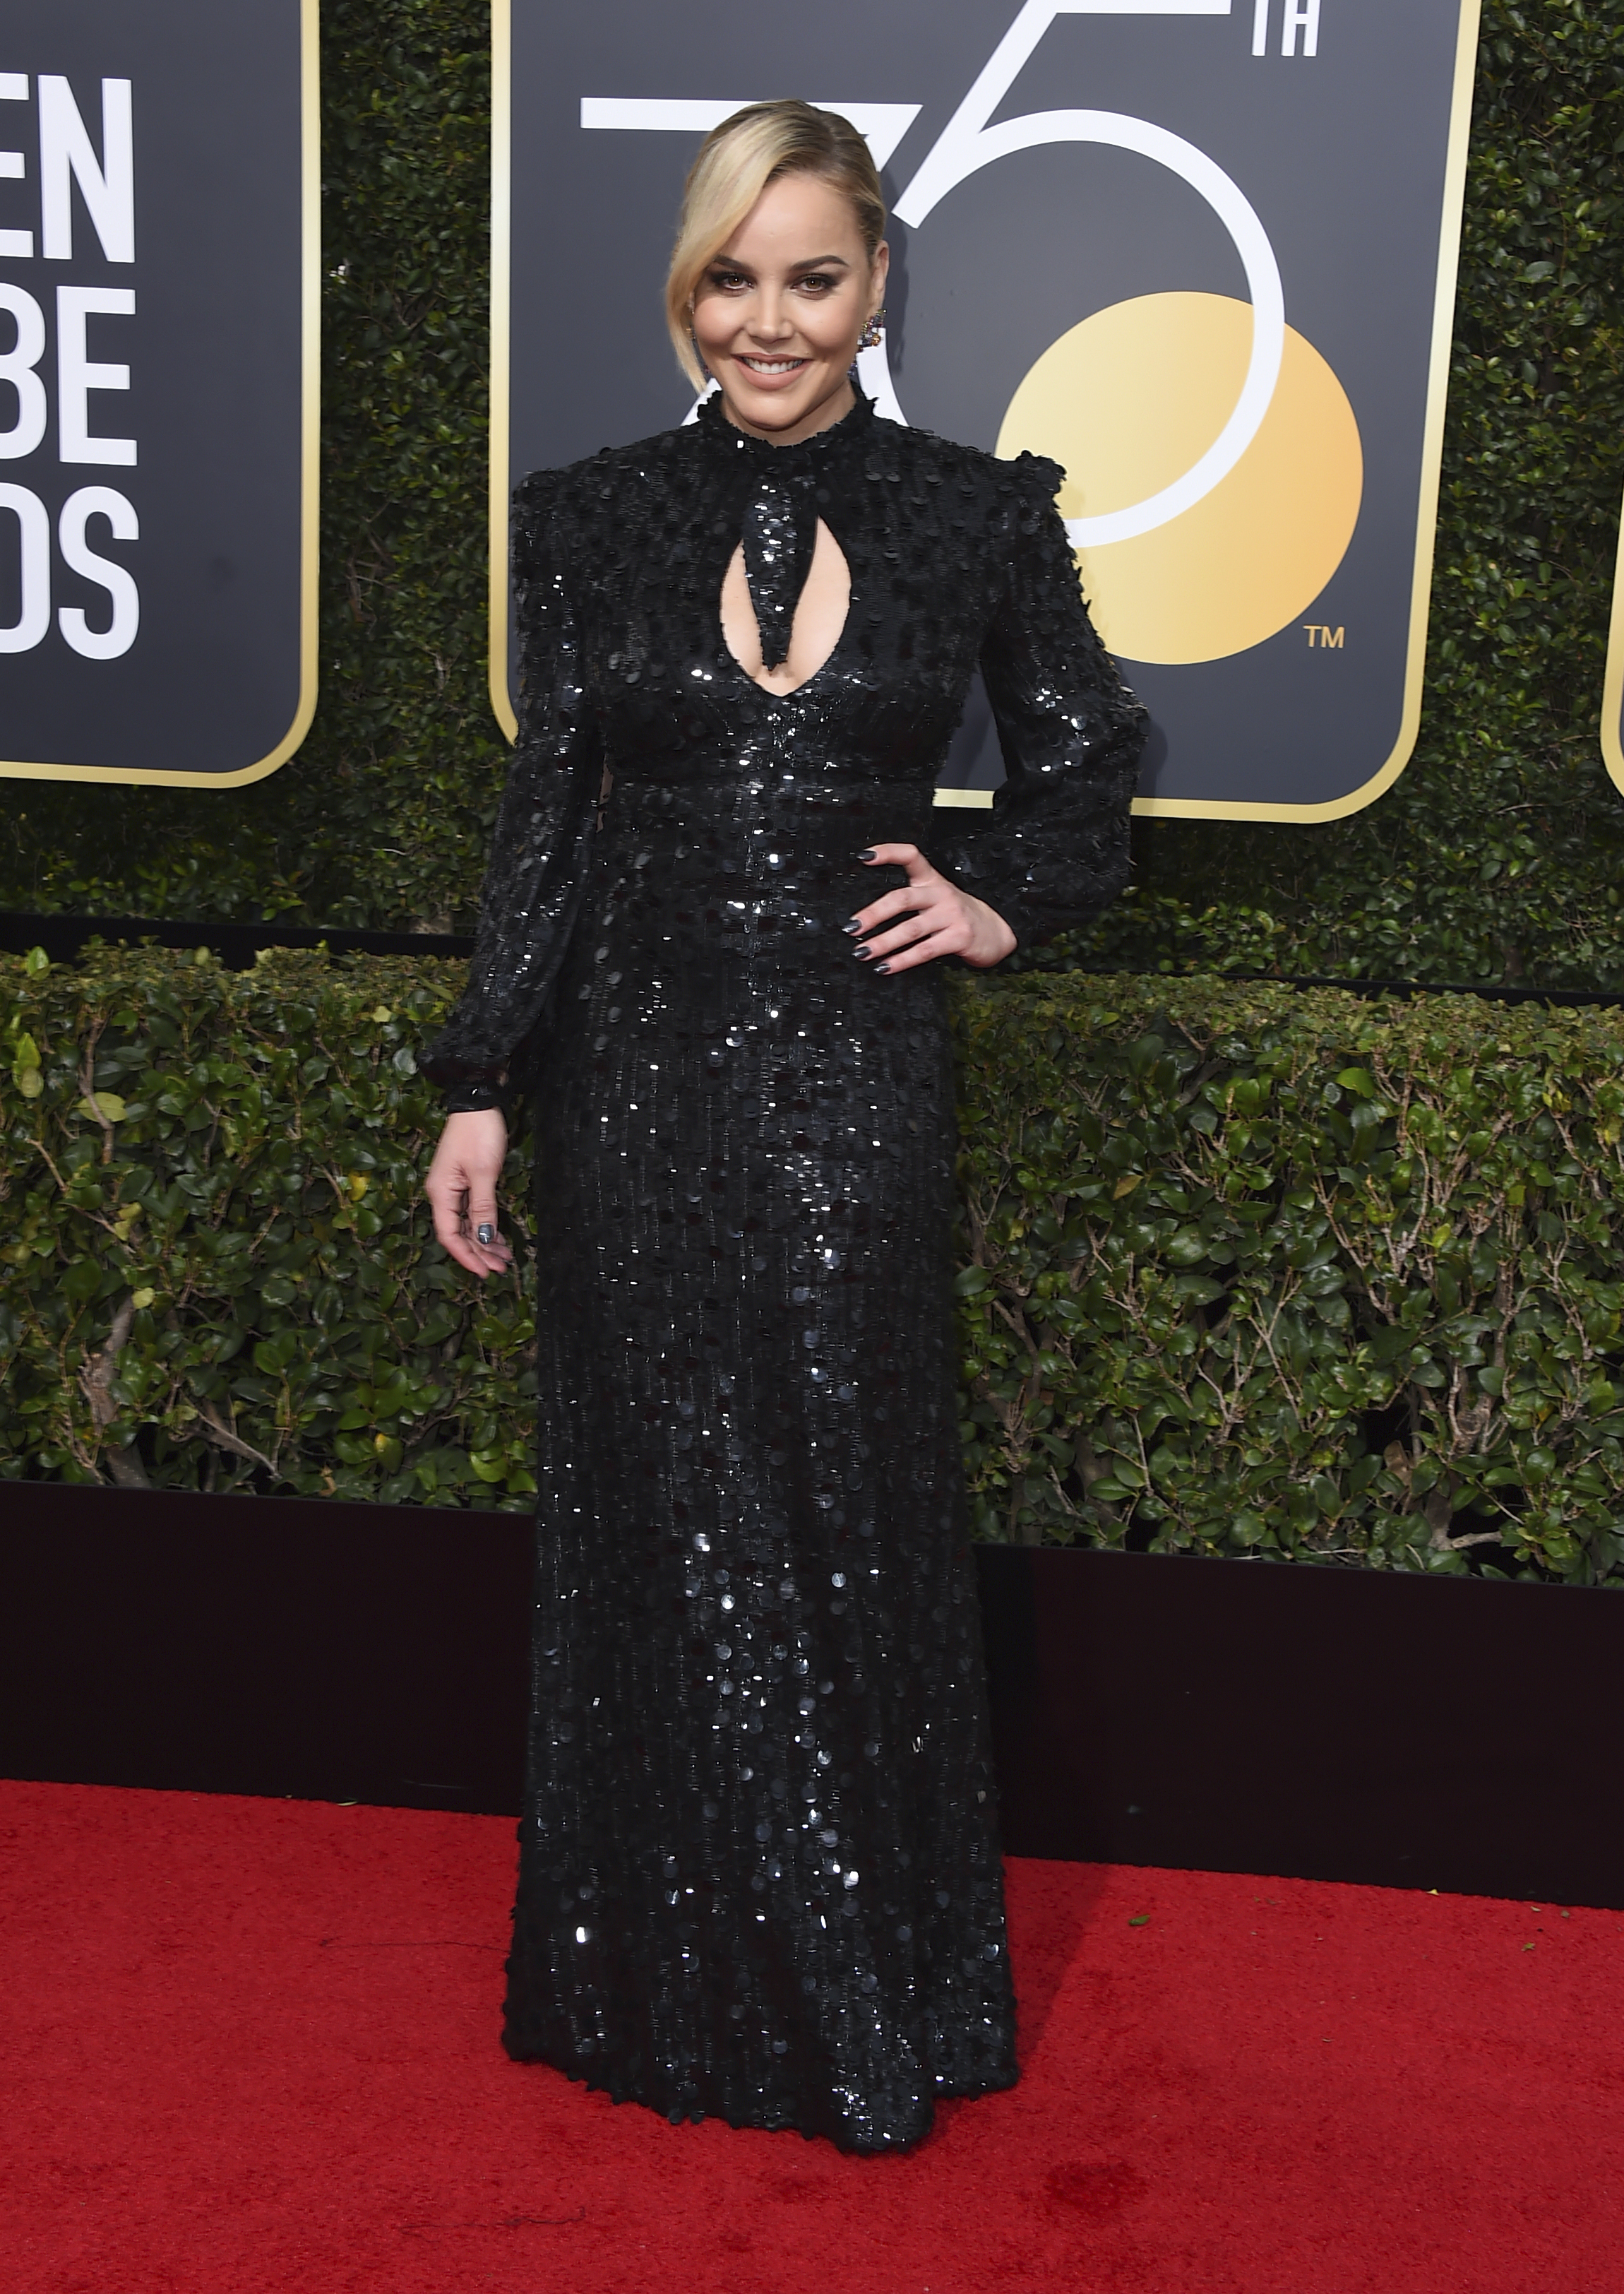 <div class='meta'><div class='origin-logo' data-origin='AP'></div><span class='caption-text' data-credit='Jordan Strauss/Invision/AP'>Abbie Cornish arrives at the 75th annual Golden Globe Awards at the Beverly Hilton Hotel on Sunday, Jan. 7, 2018, in Beverly Hills, Calif.</span></div>